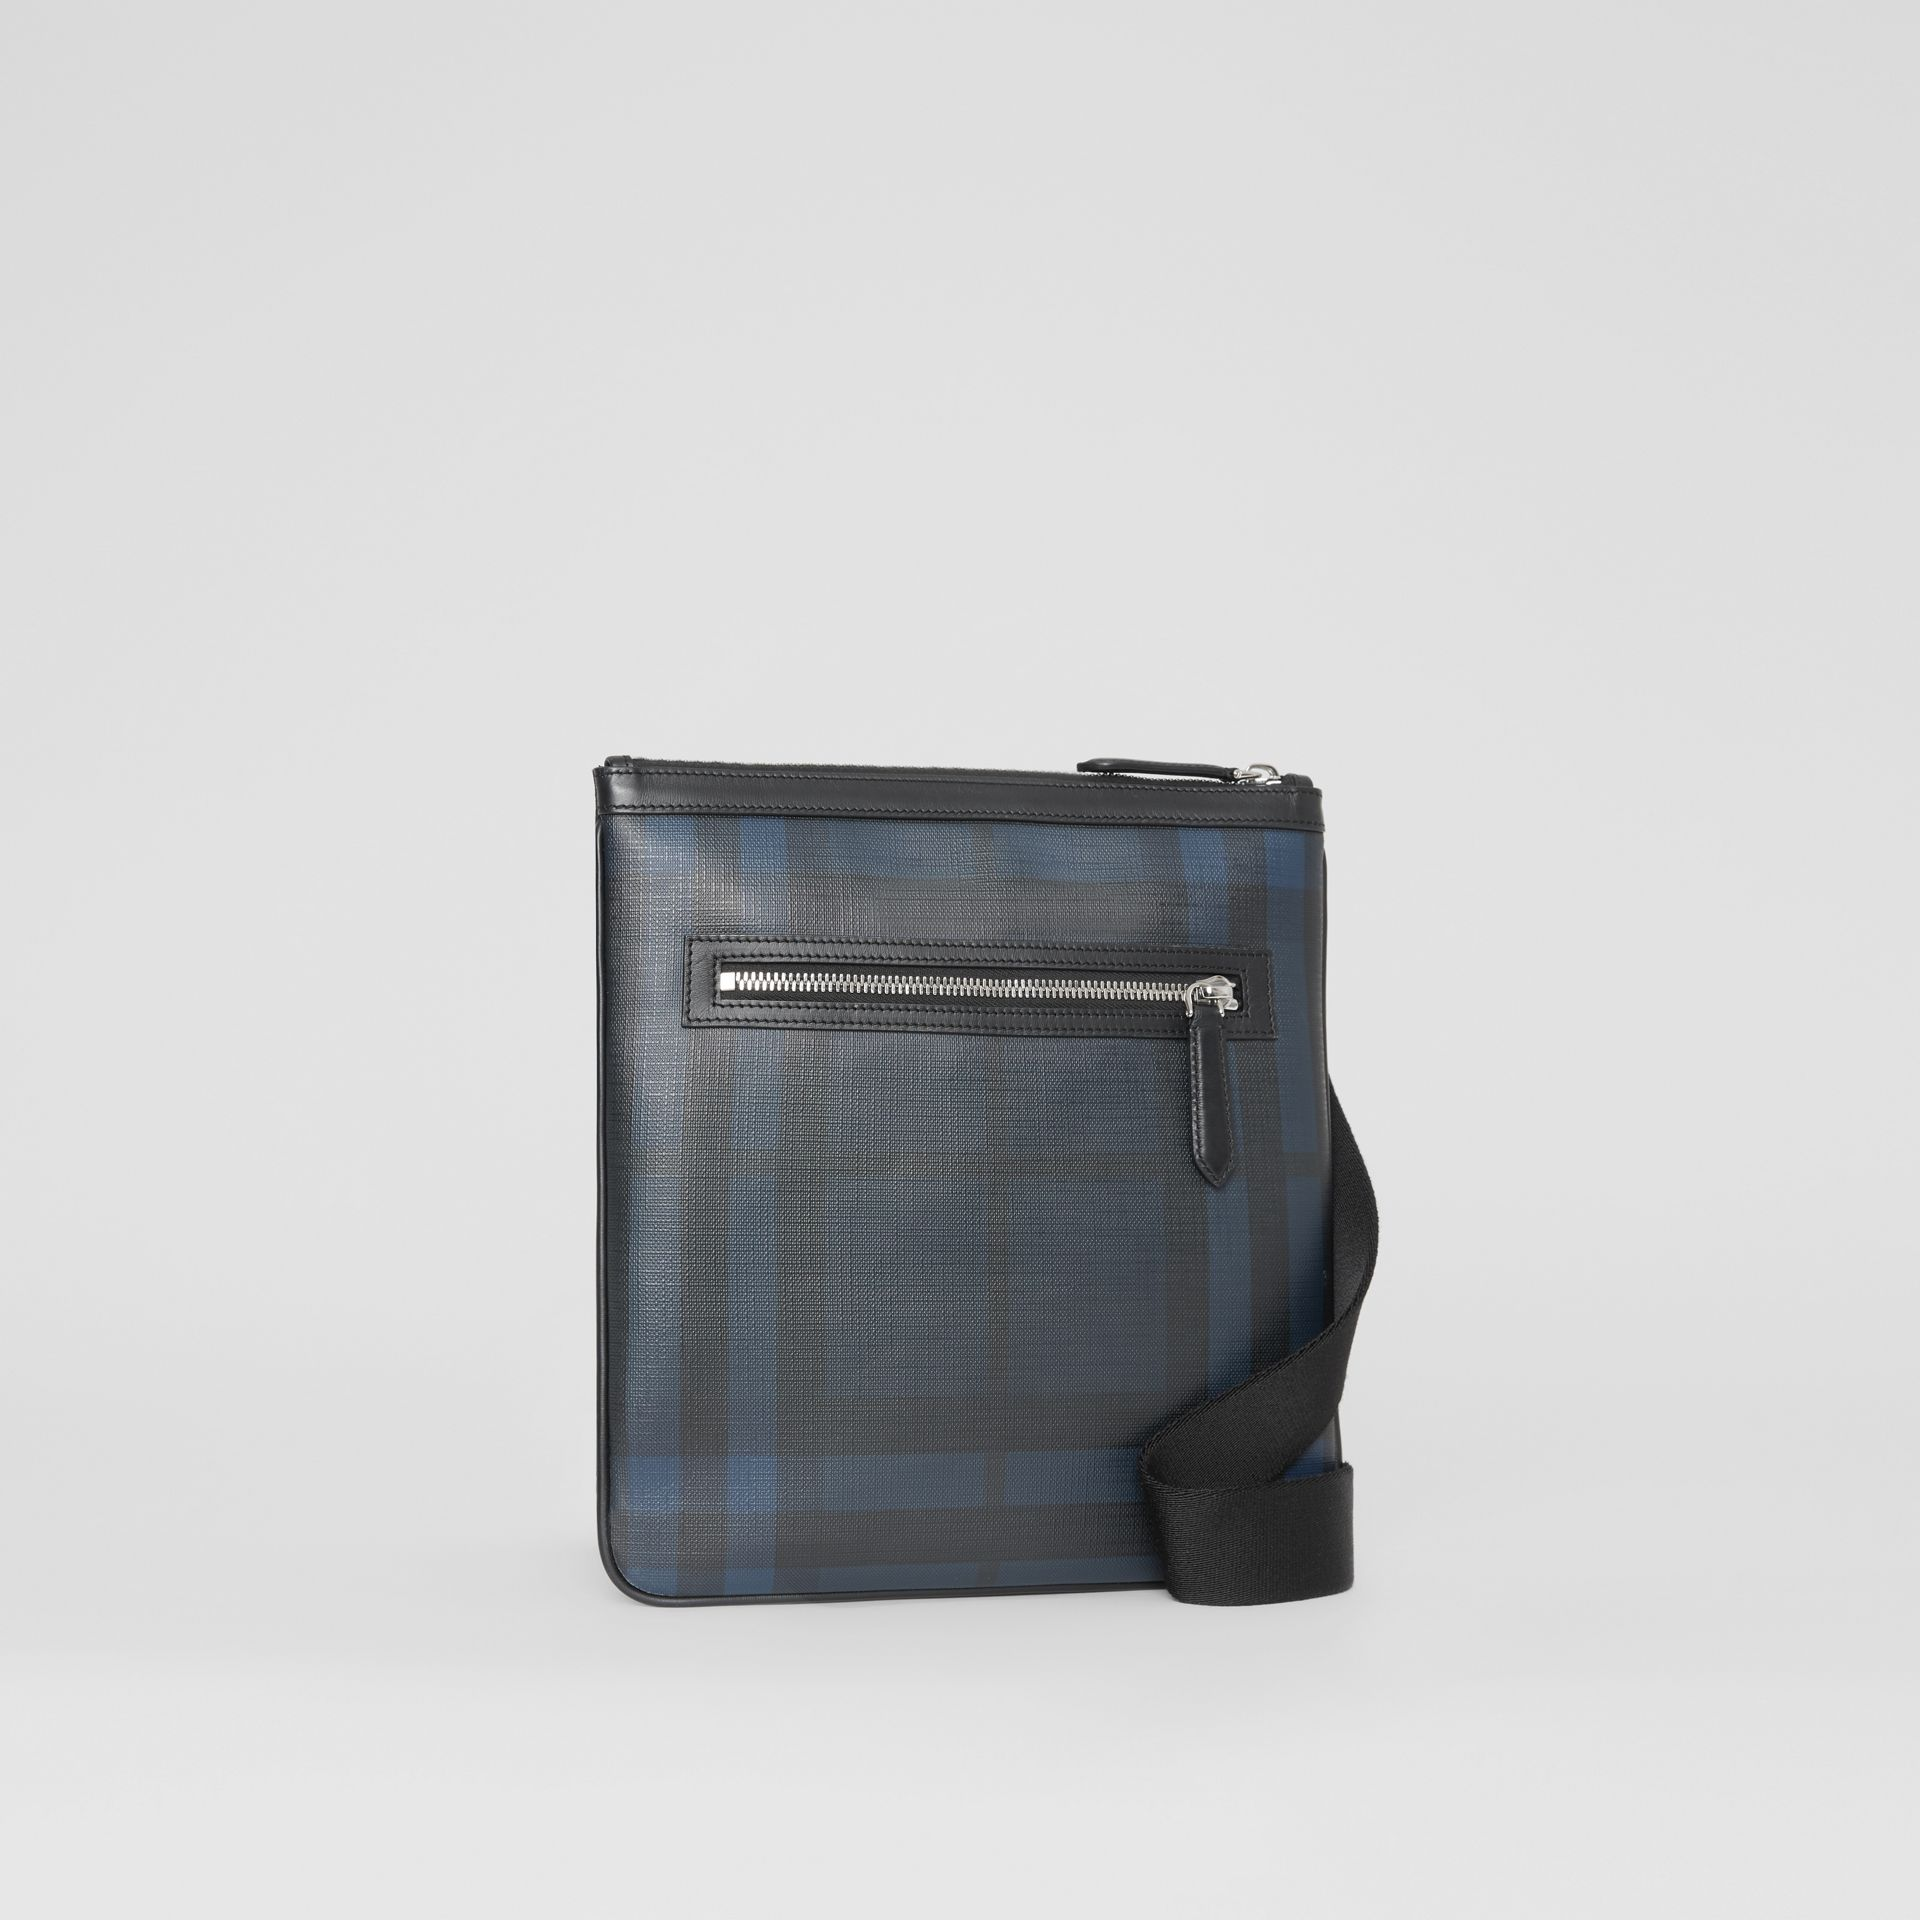 Leather Trim London Check Crossbody Bag in Navy/black - Men | Burberry United Kingdom - gallery image 6